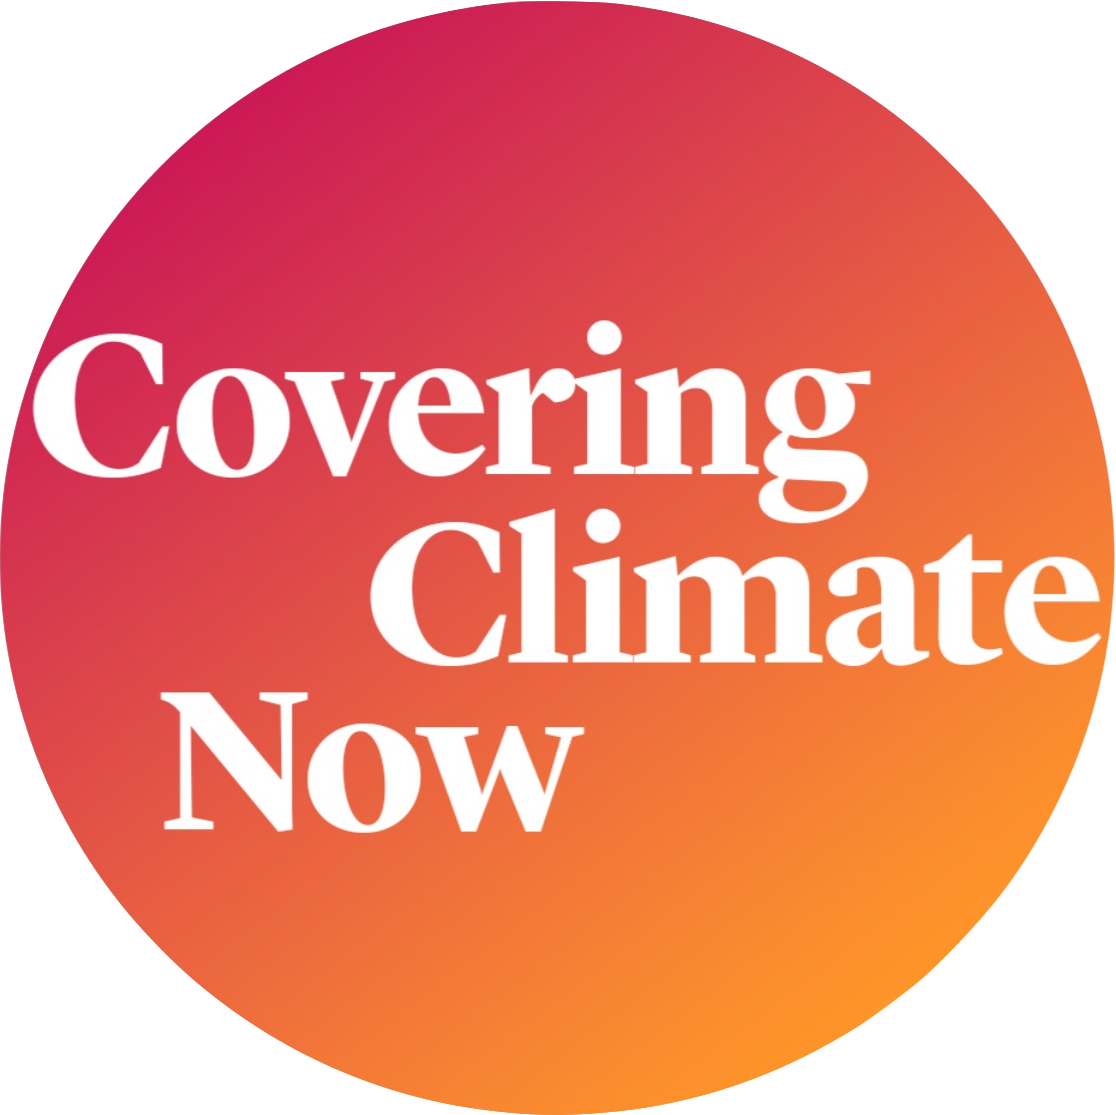 This story is part of Covering Climate Now, a global collaboration of more than 220 news outlets to strengthen coverage of the climate story.